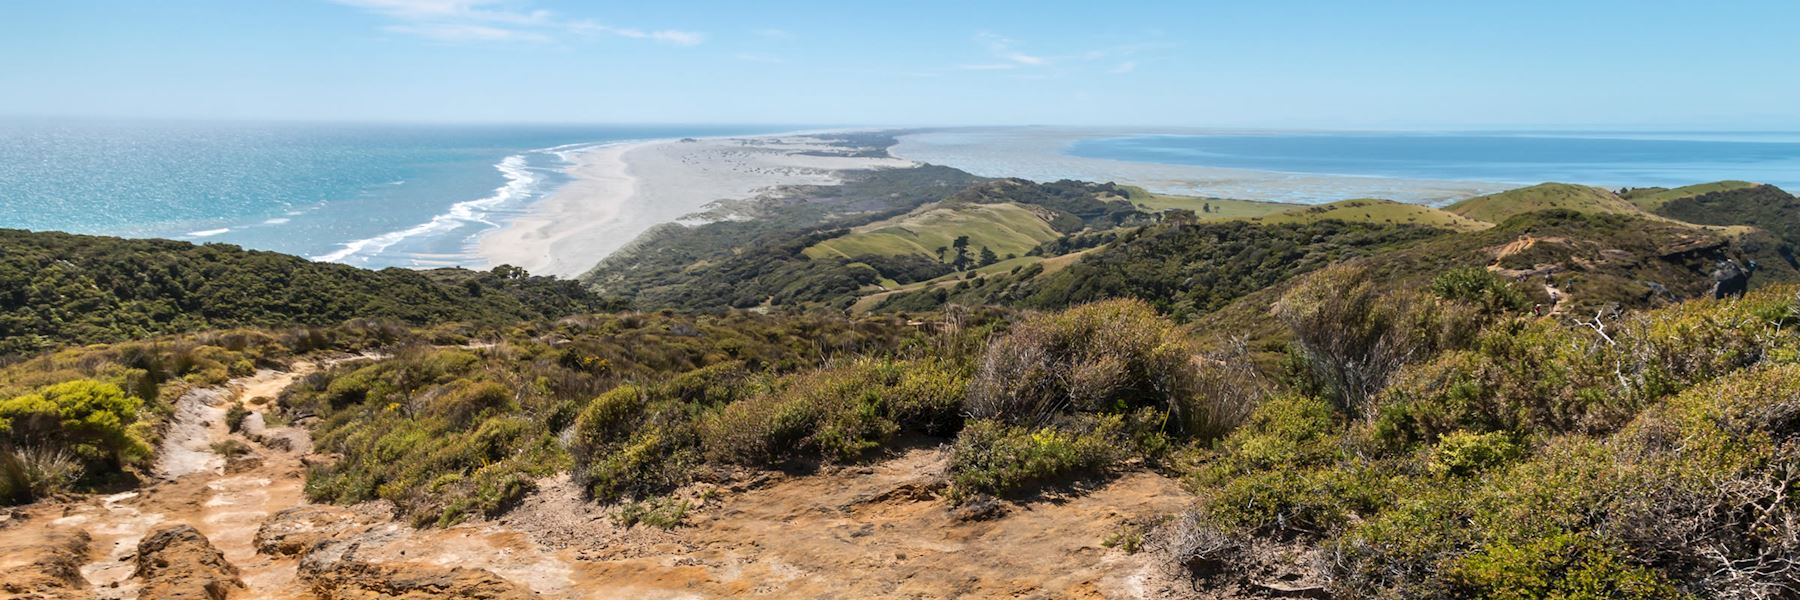 Visit Collingwood & Farewell Spit, New Zealand